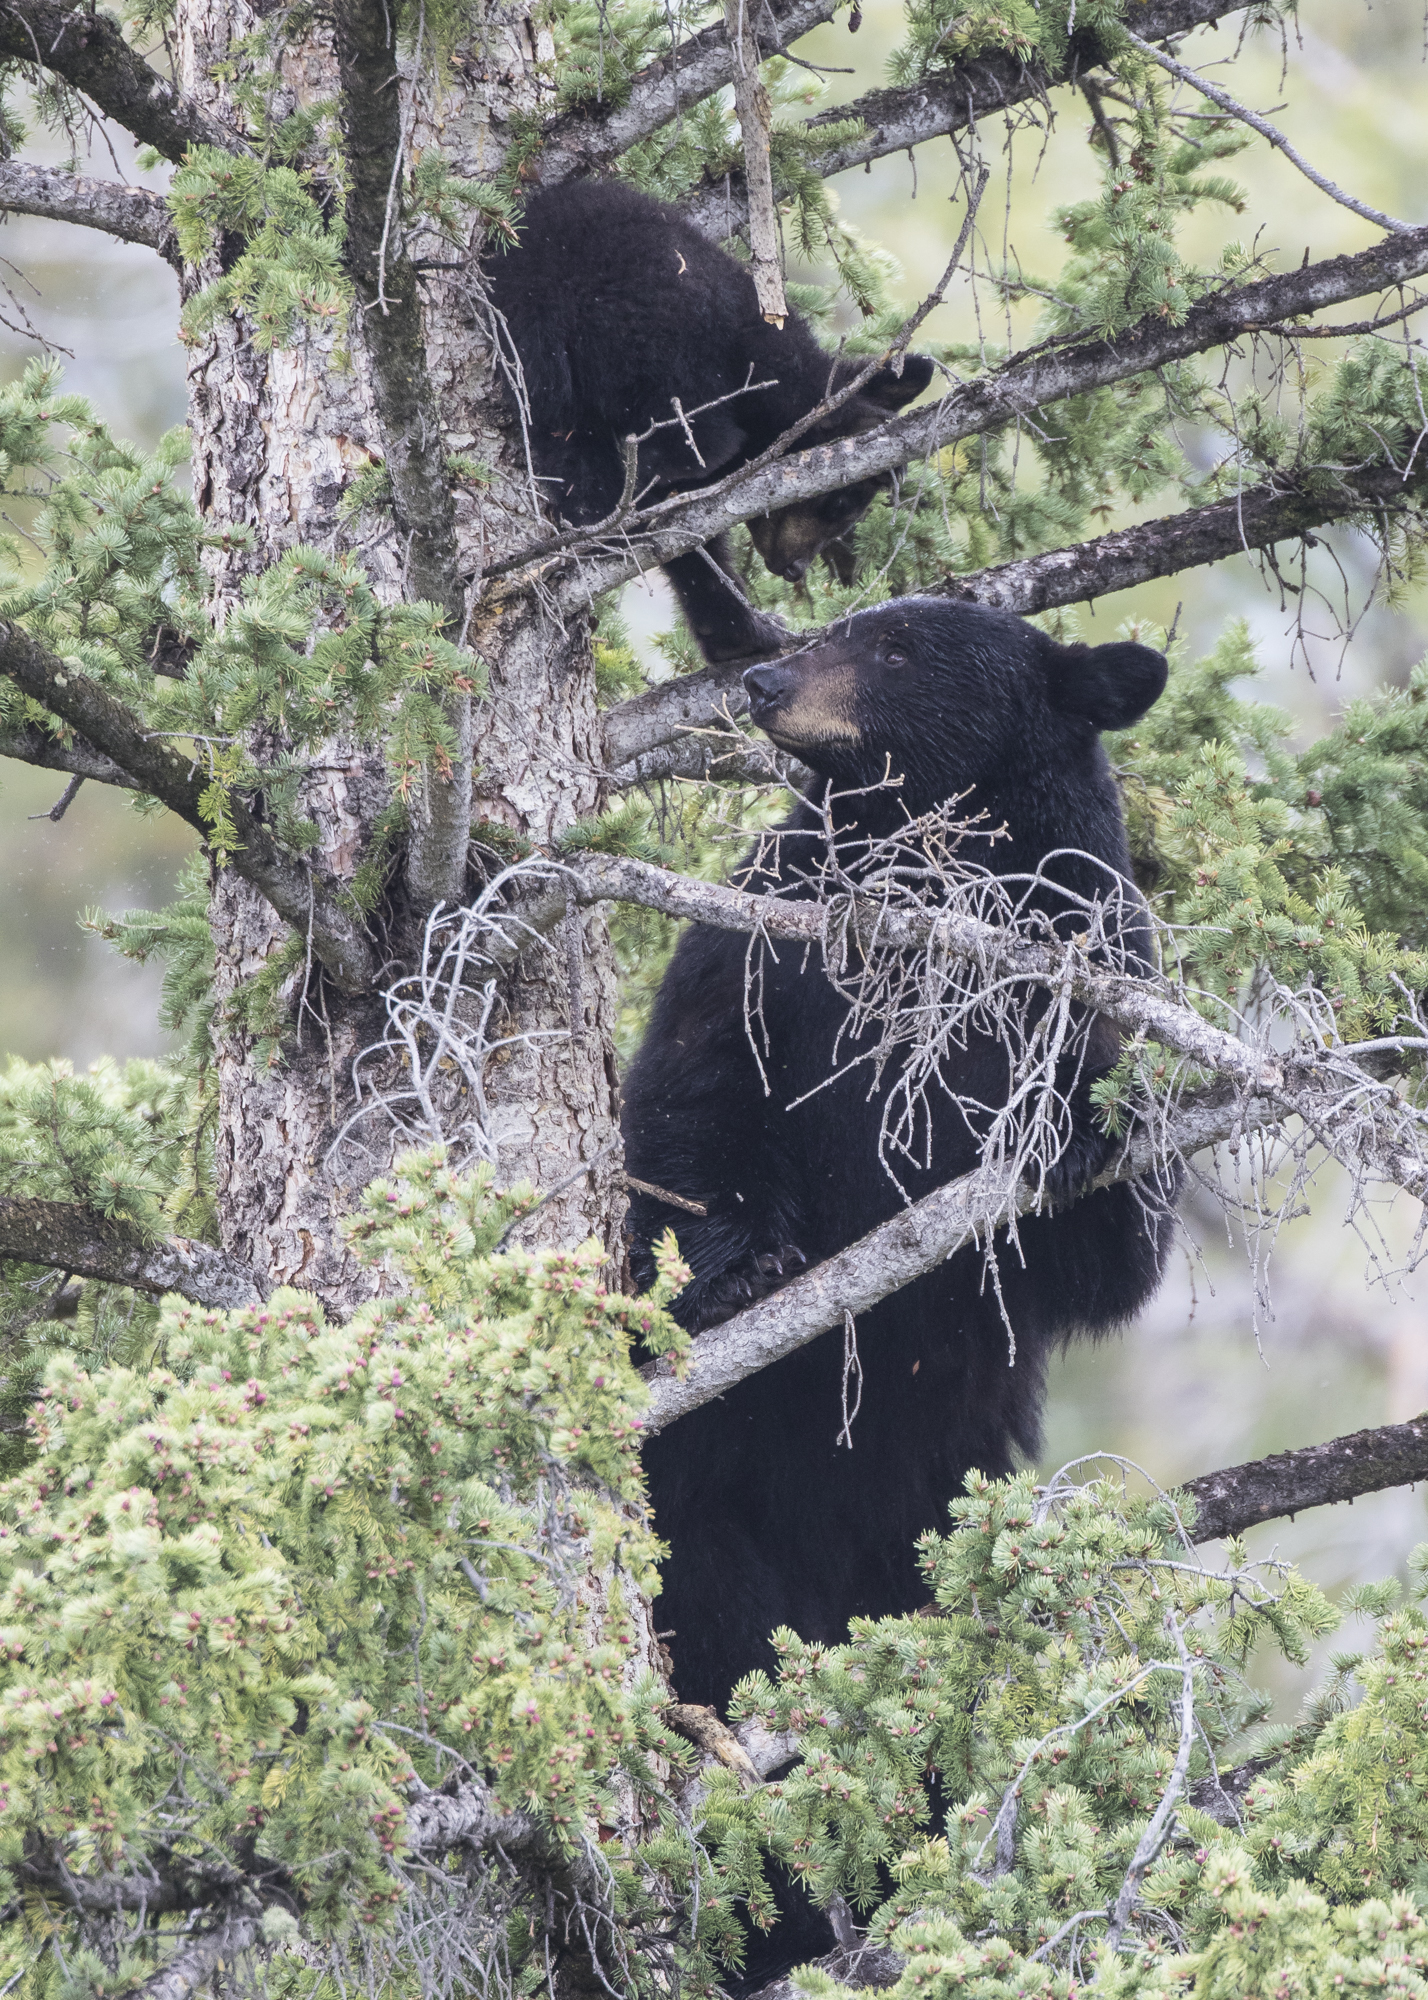 Black bear and cub in tree